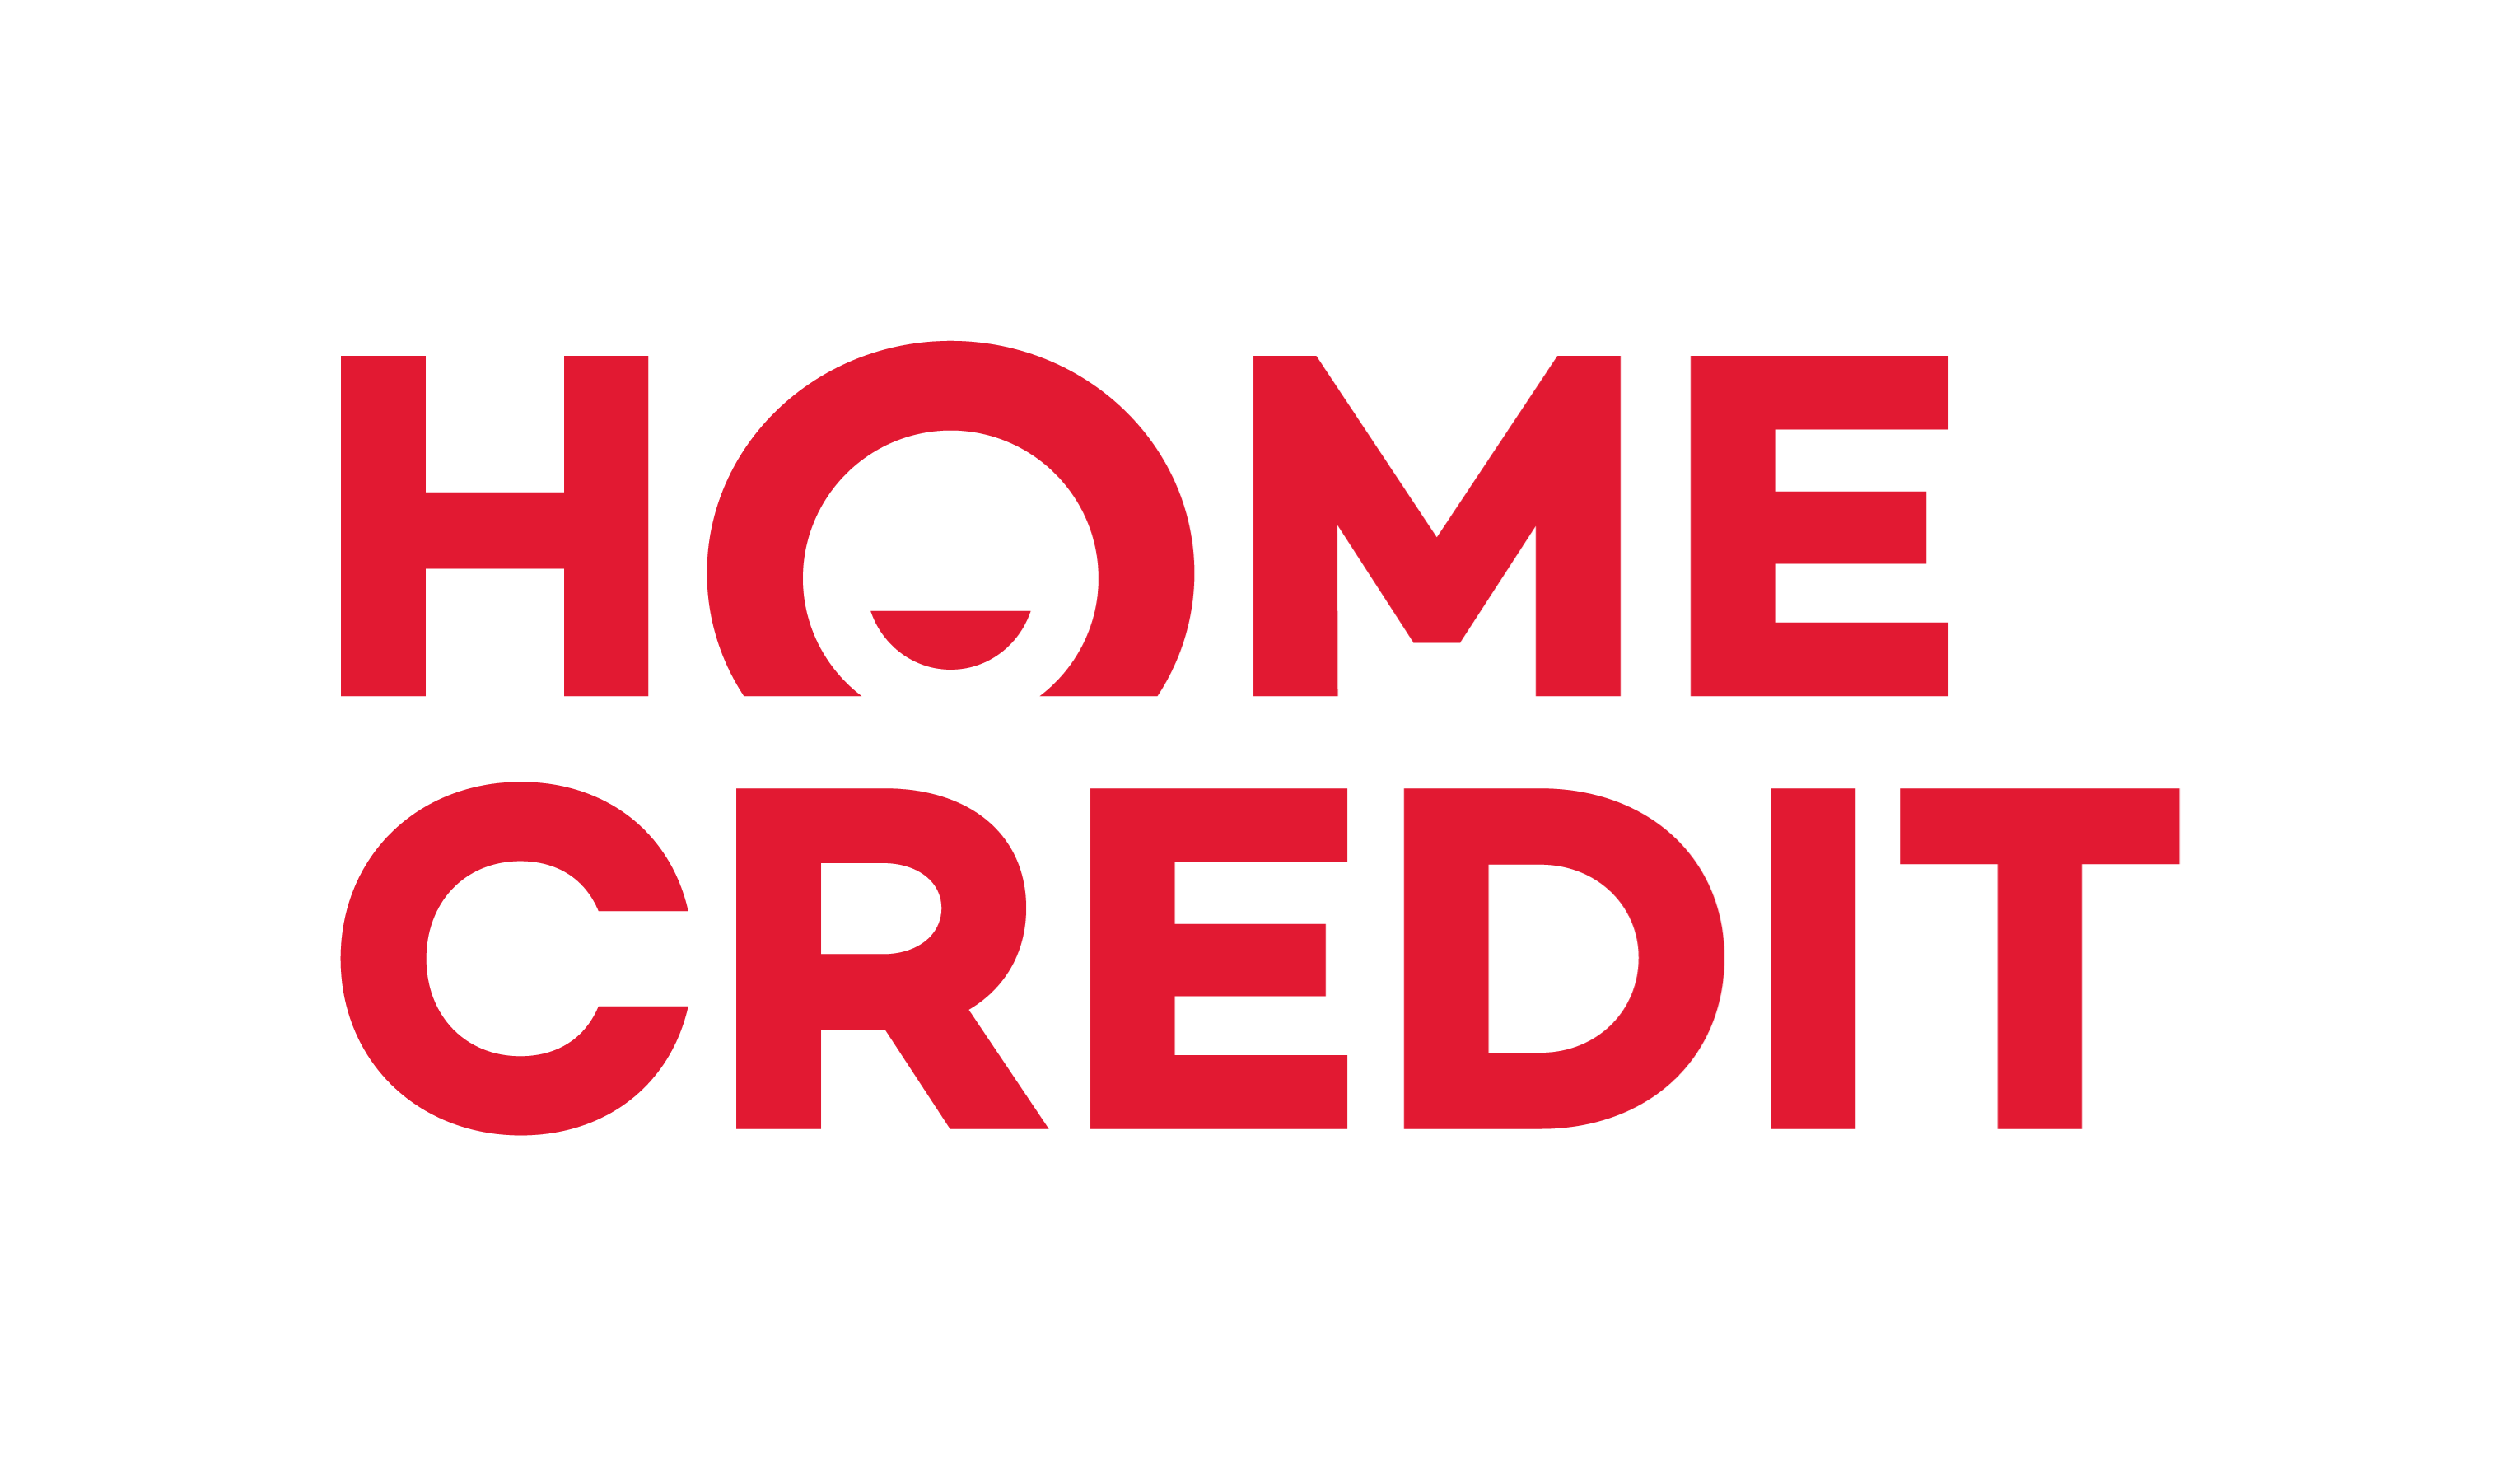 Home Credit Indonesia (Recruitment Page for TECHNOLOGY team)